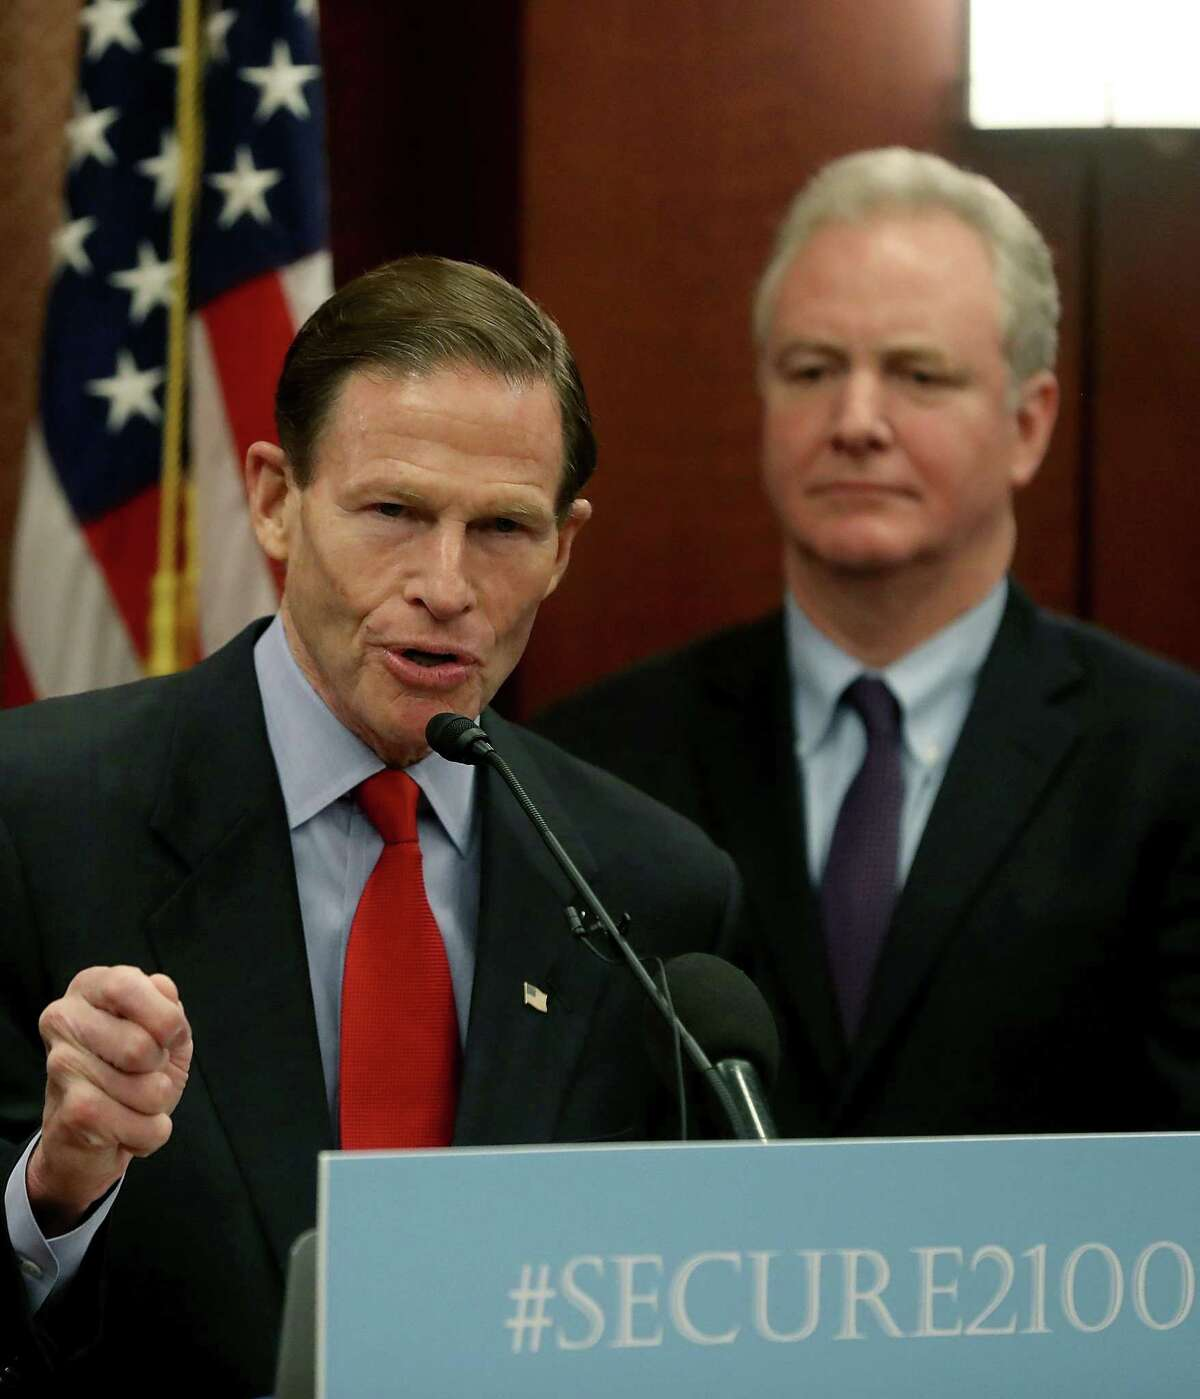 Sen. Richard Blumenthal (D-CT) speaks while flanked by Sen. Chris Van Hollen (D-MD) during an event to introduce legislation called the Social Security 2100 Act. which would increase increase benefits and strengthen the fund, during a news conference on Capitol Hill January 30, 2019 in Washington, DC.